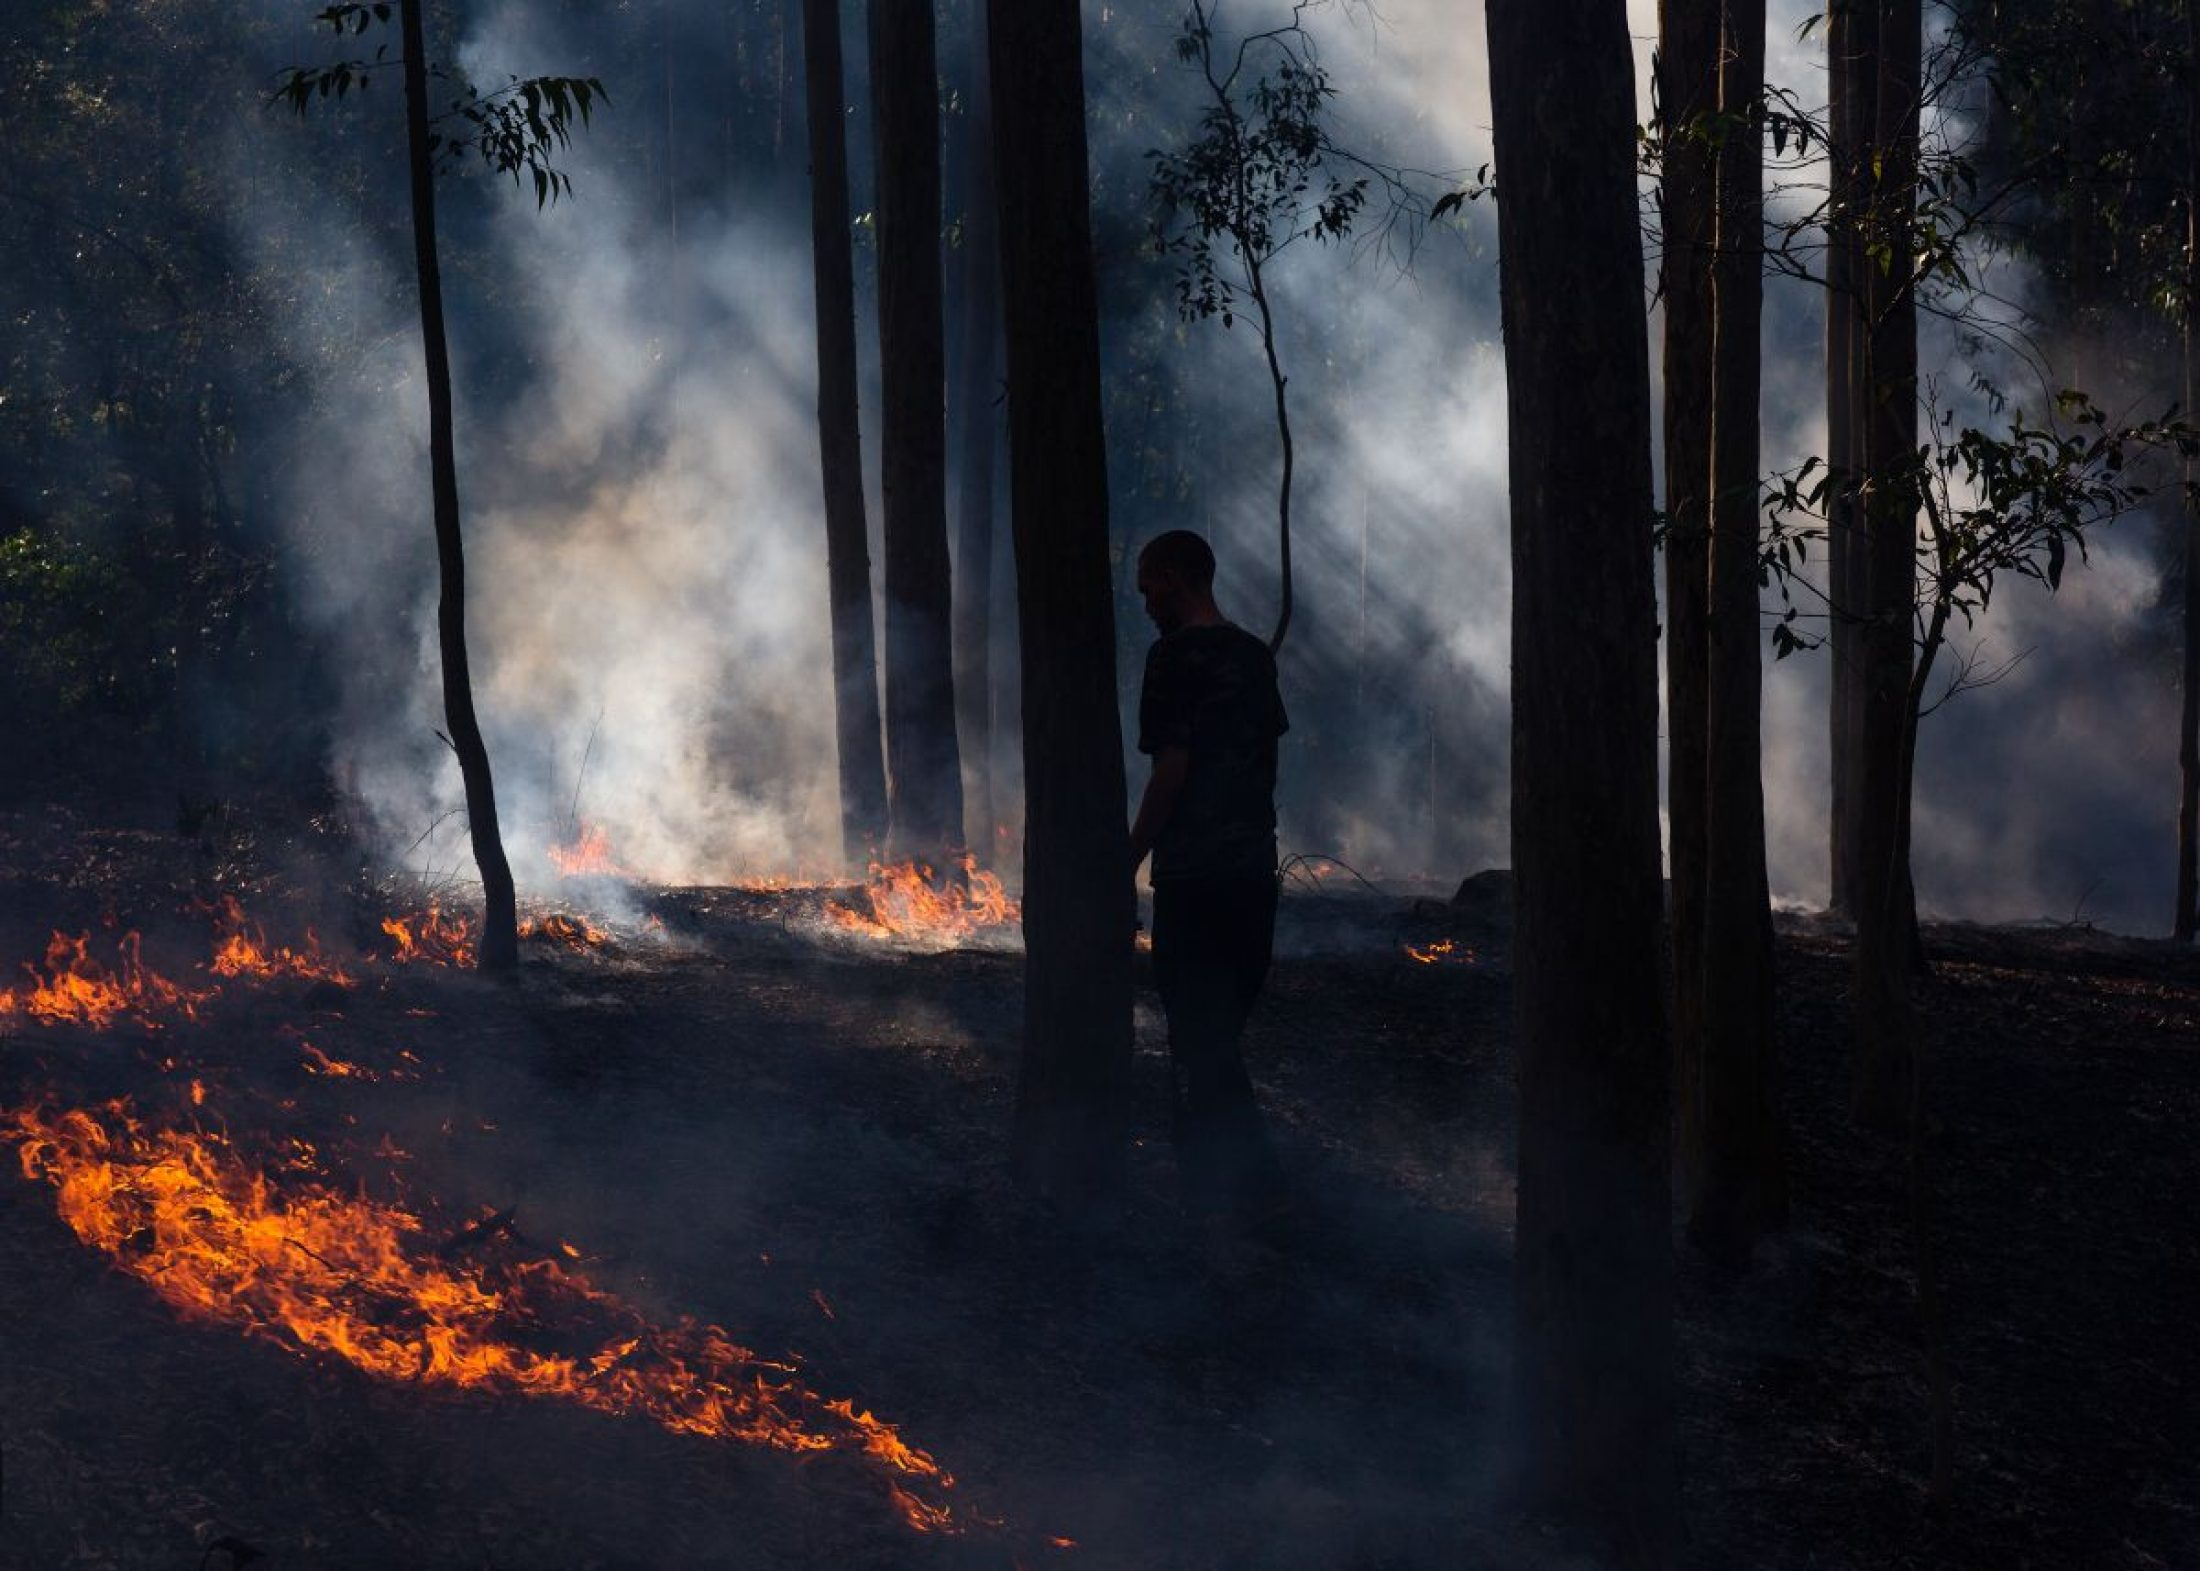 Wildfires burned 5.4 million hectares of land and destroyed 2,439 homes in New South Wales